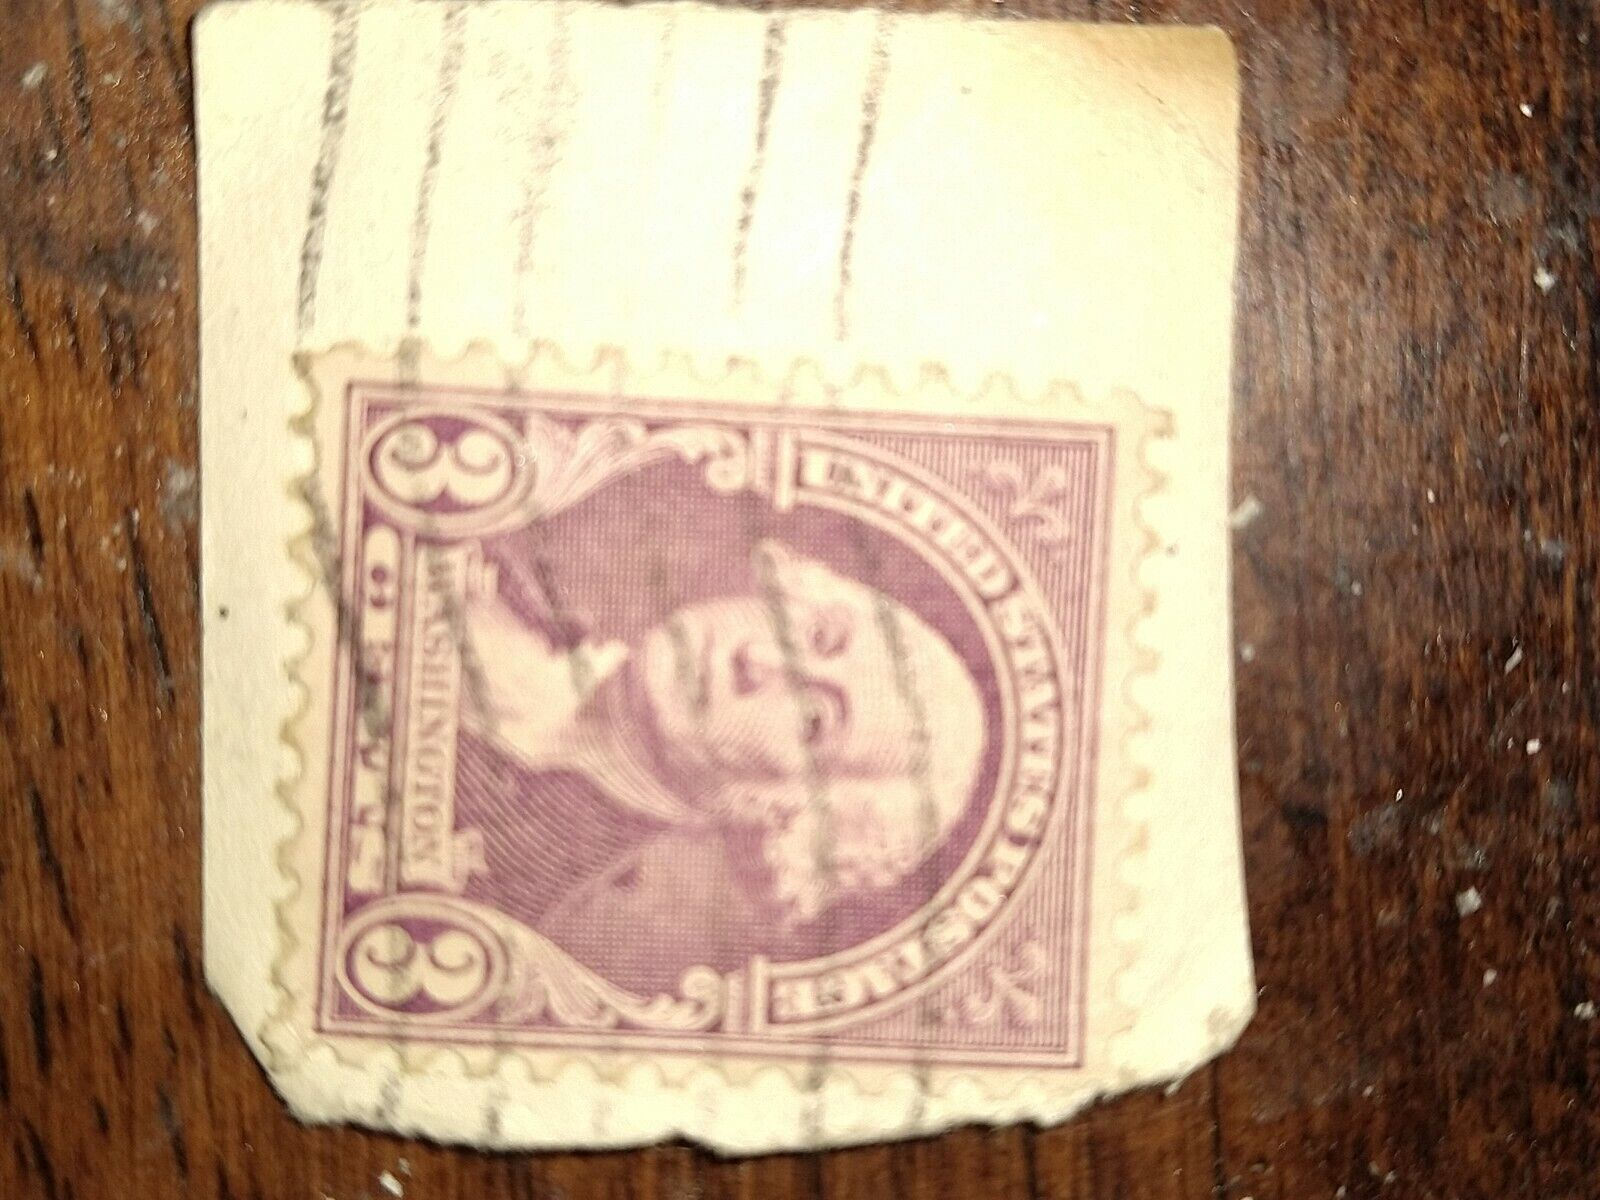 George Washington 3 Cent Stamp Rare Stamp Used - $150.00